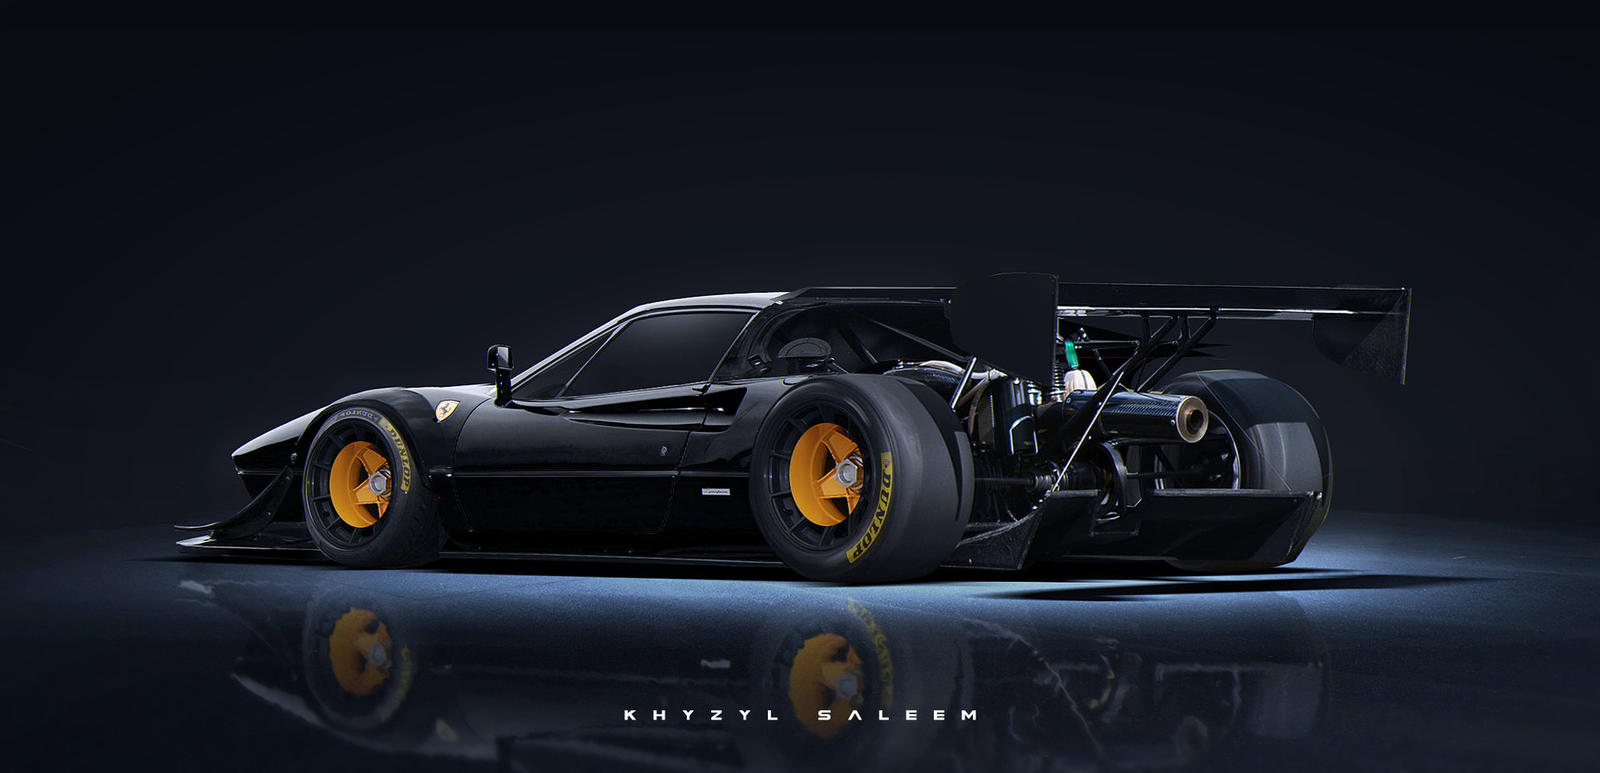 Gto Built For The Climb By The Kyza On Deviantart